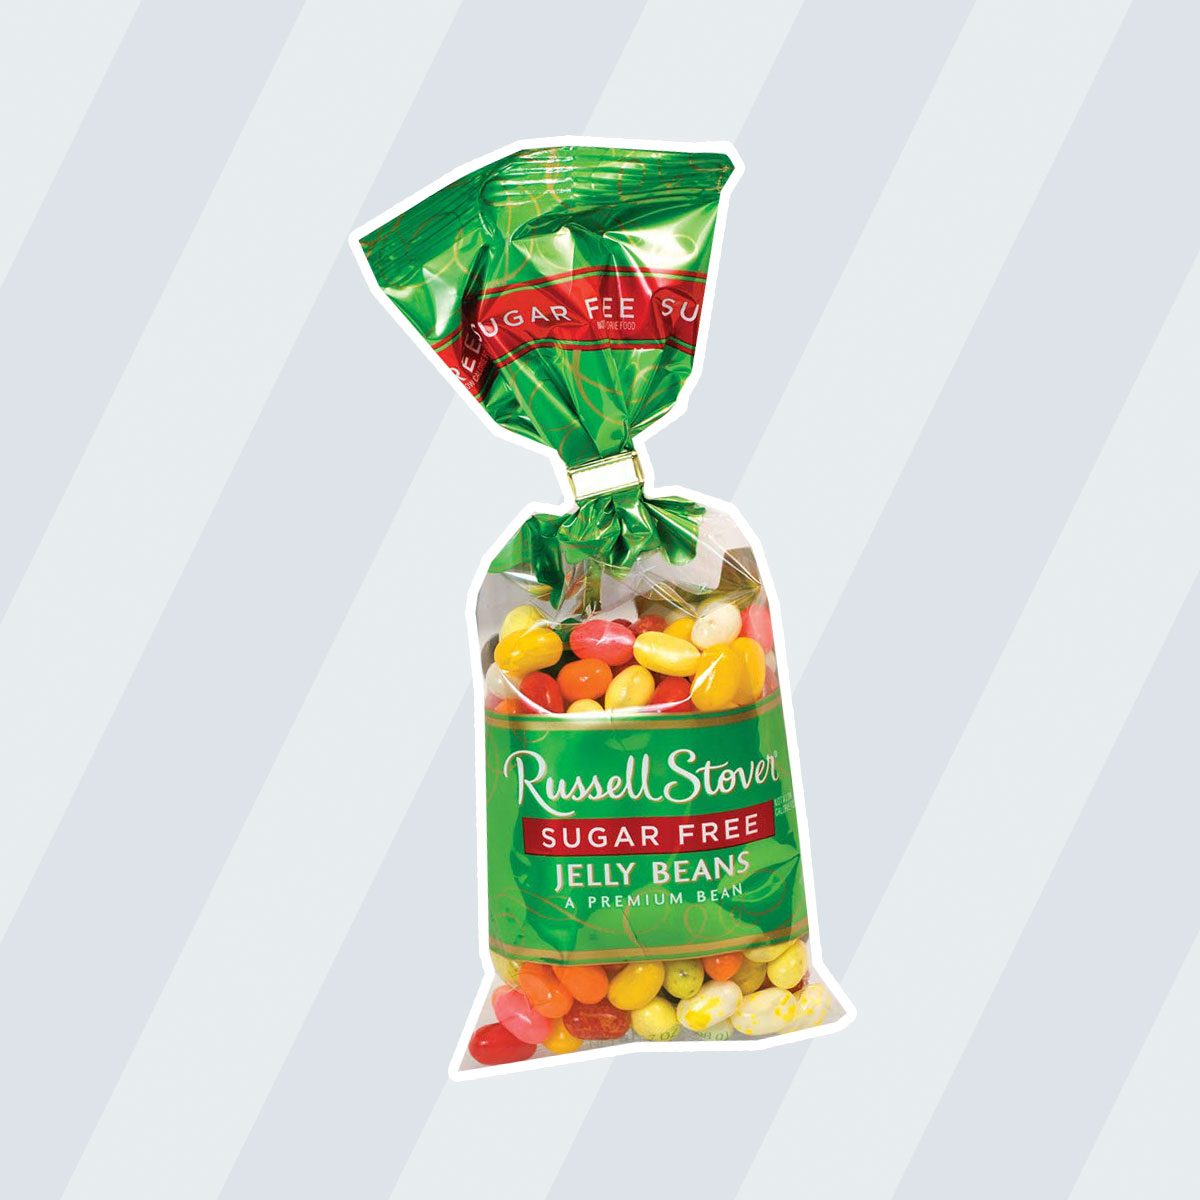 Russell Stover Sugar-Free Jelly Beans